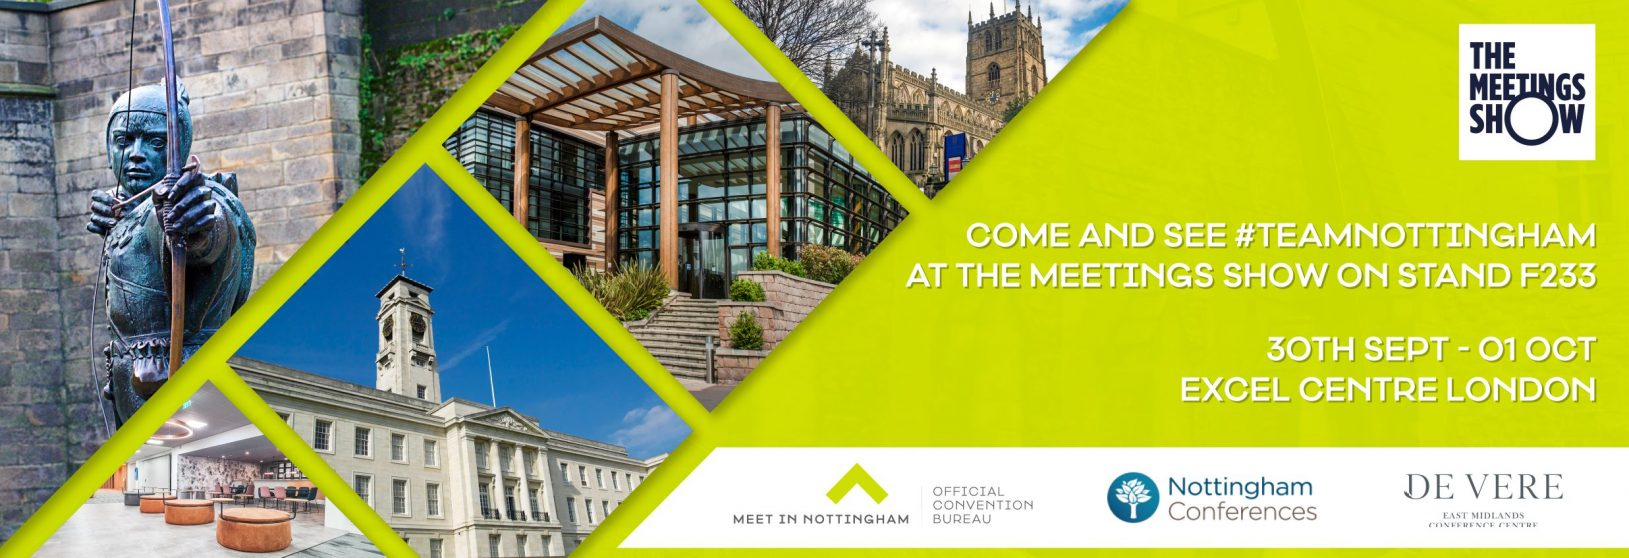 Team Nottingham at The Meetings Show